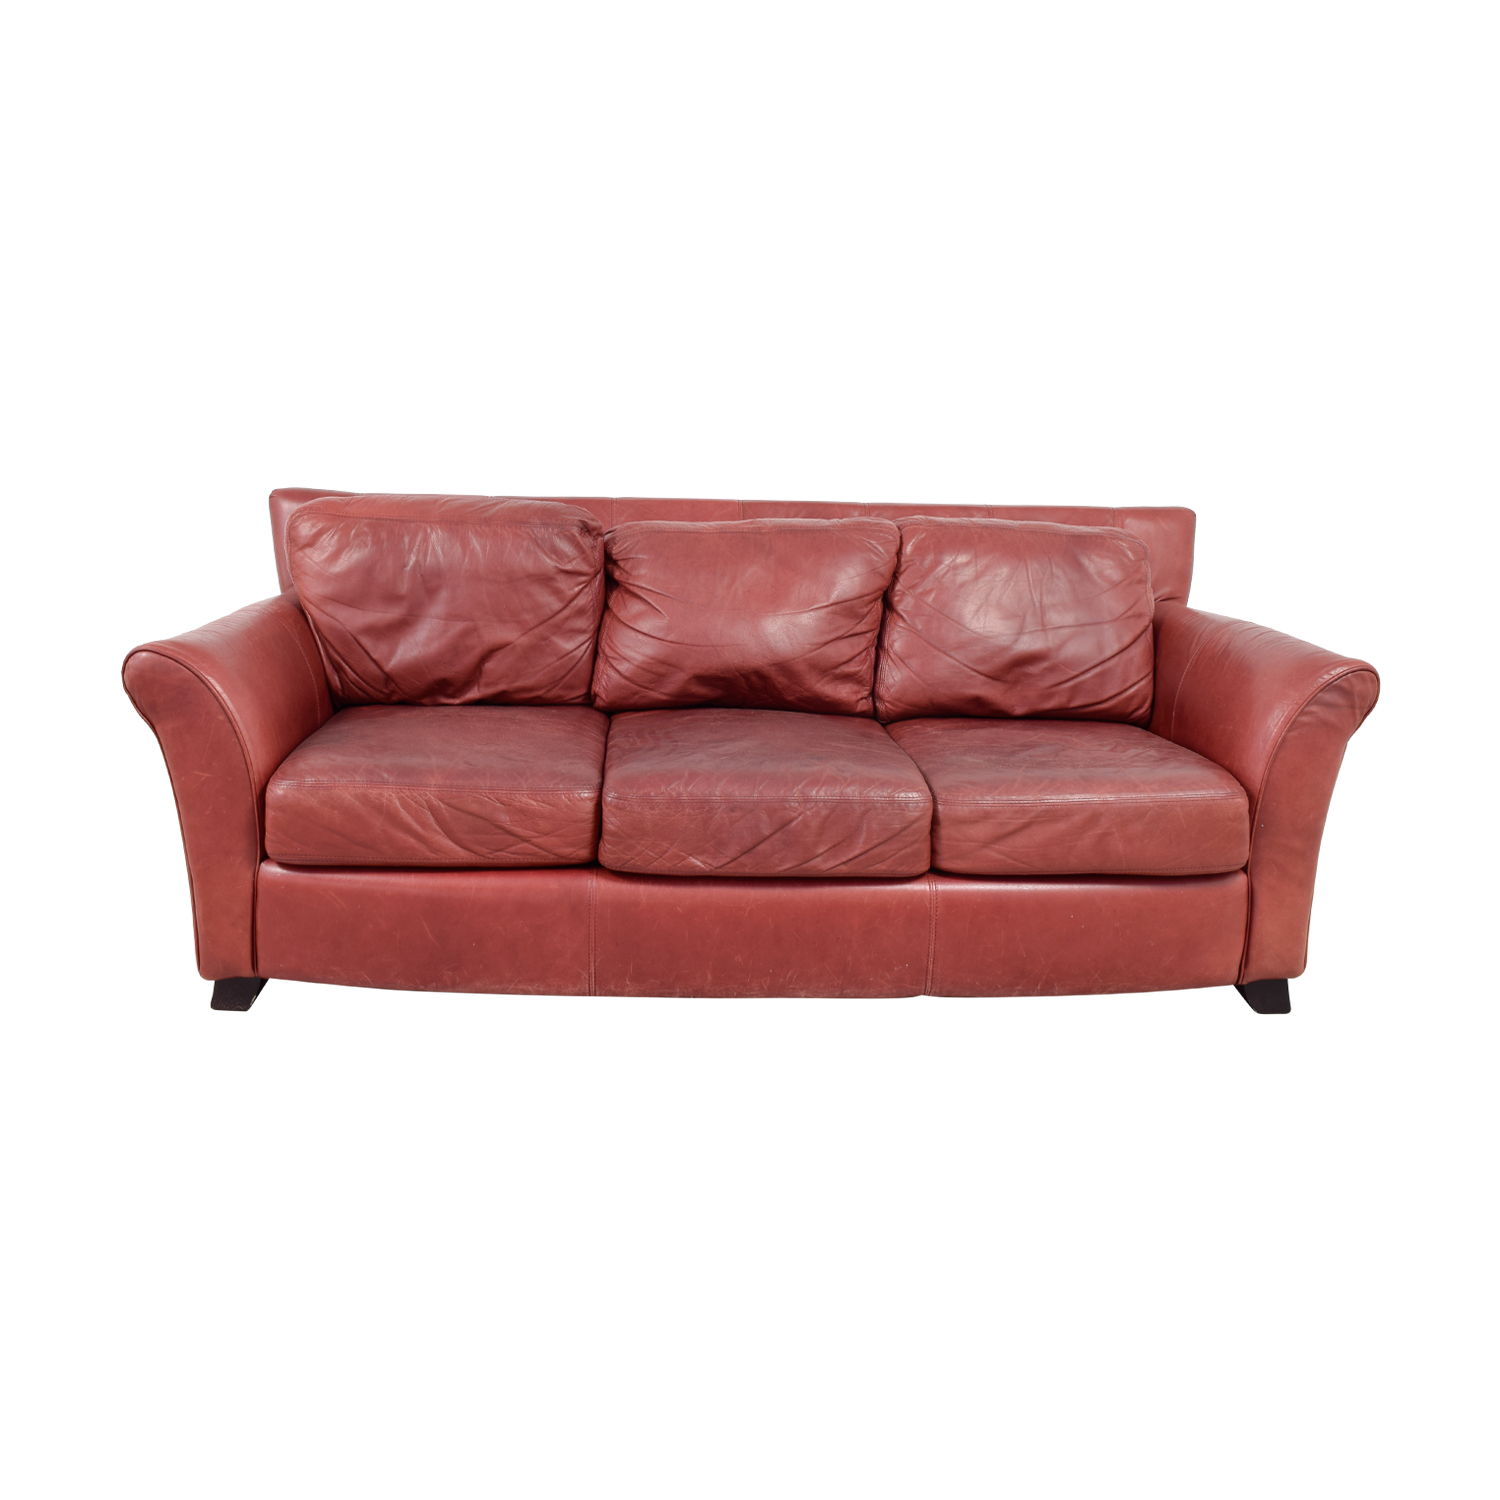 Palliser Palliser Red Leather Three-Cushion Sofa vintage cherry